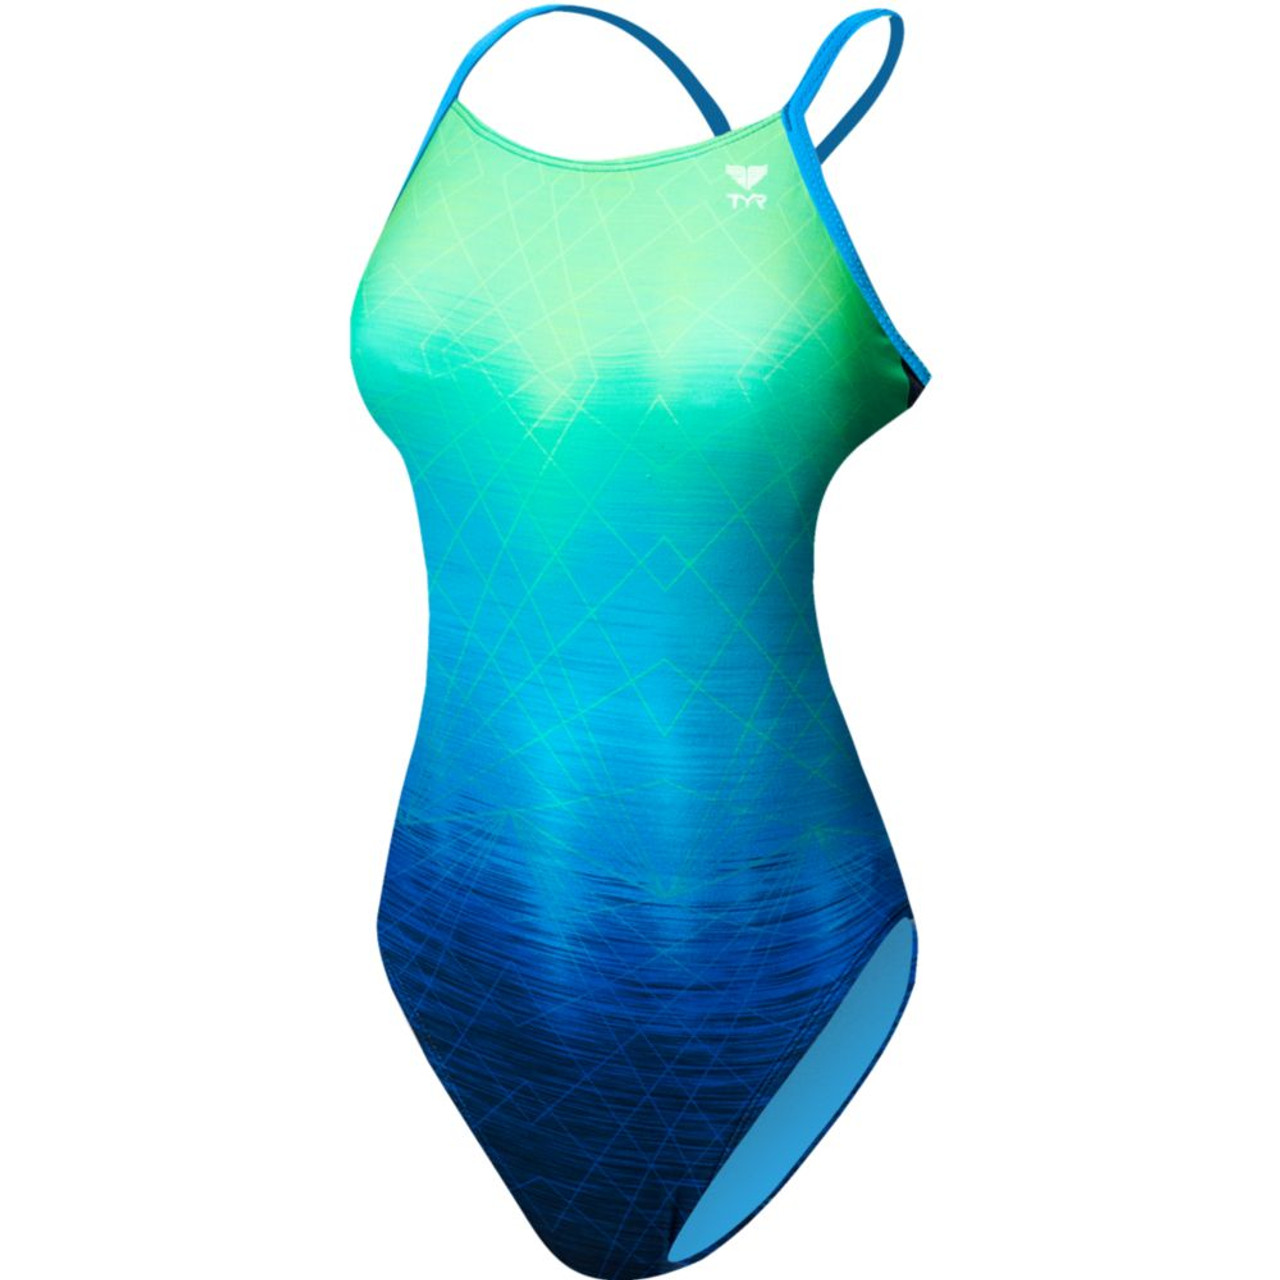 a1868b776 TYR Women's Kinematic Cutoutfit Swimsuit